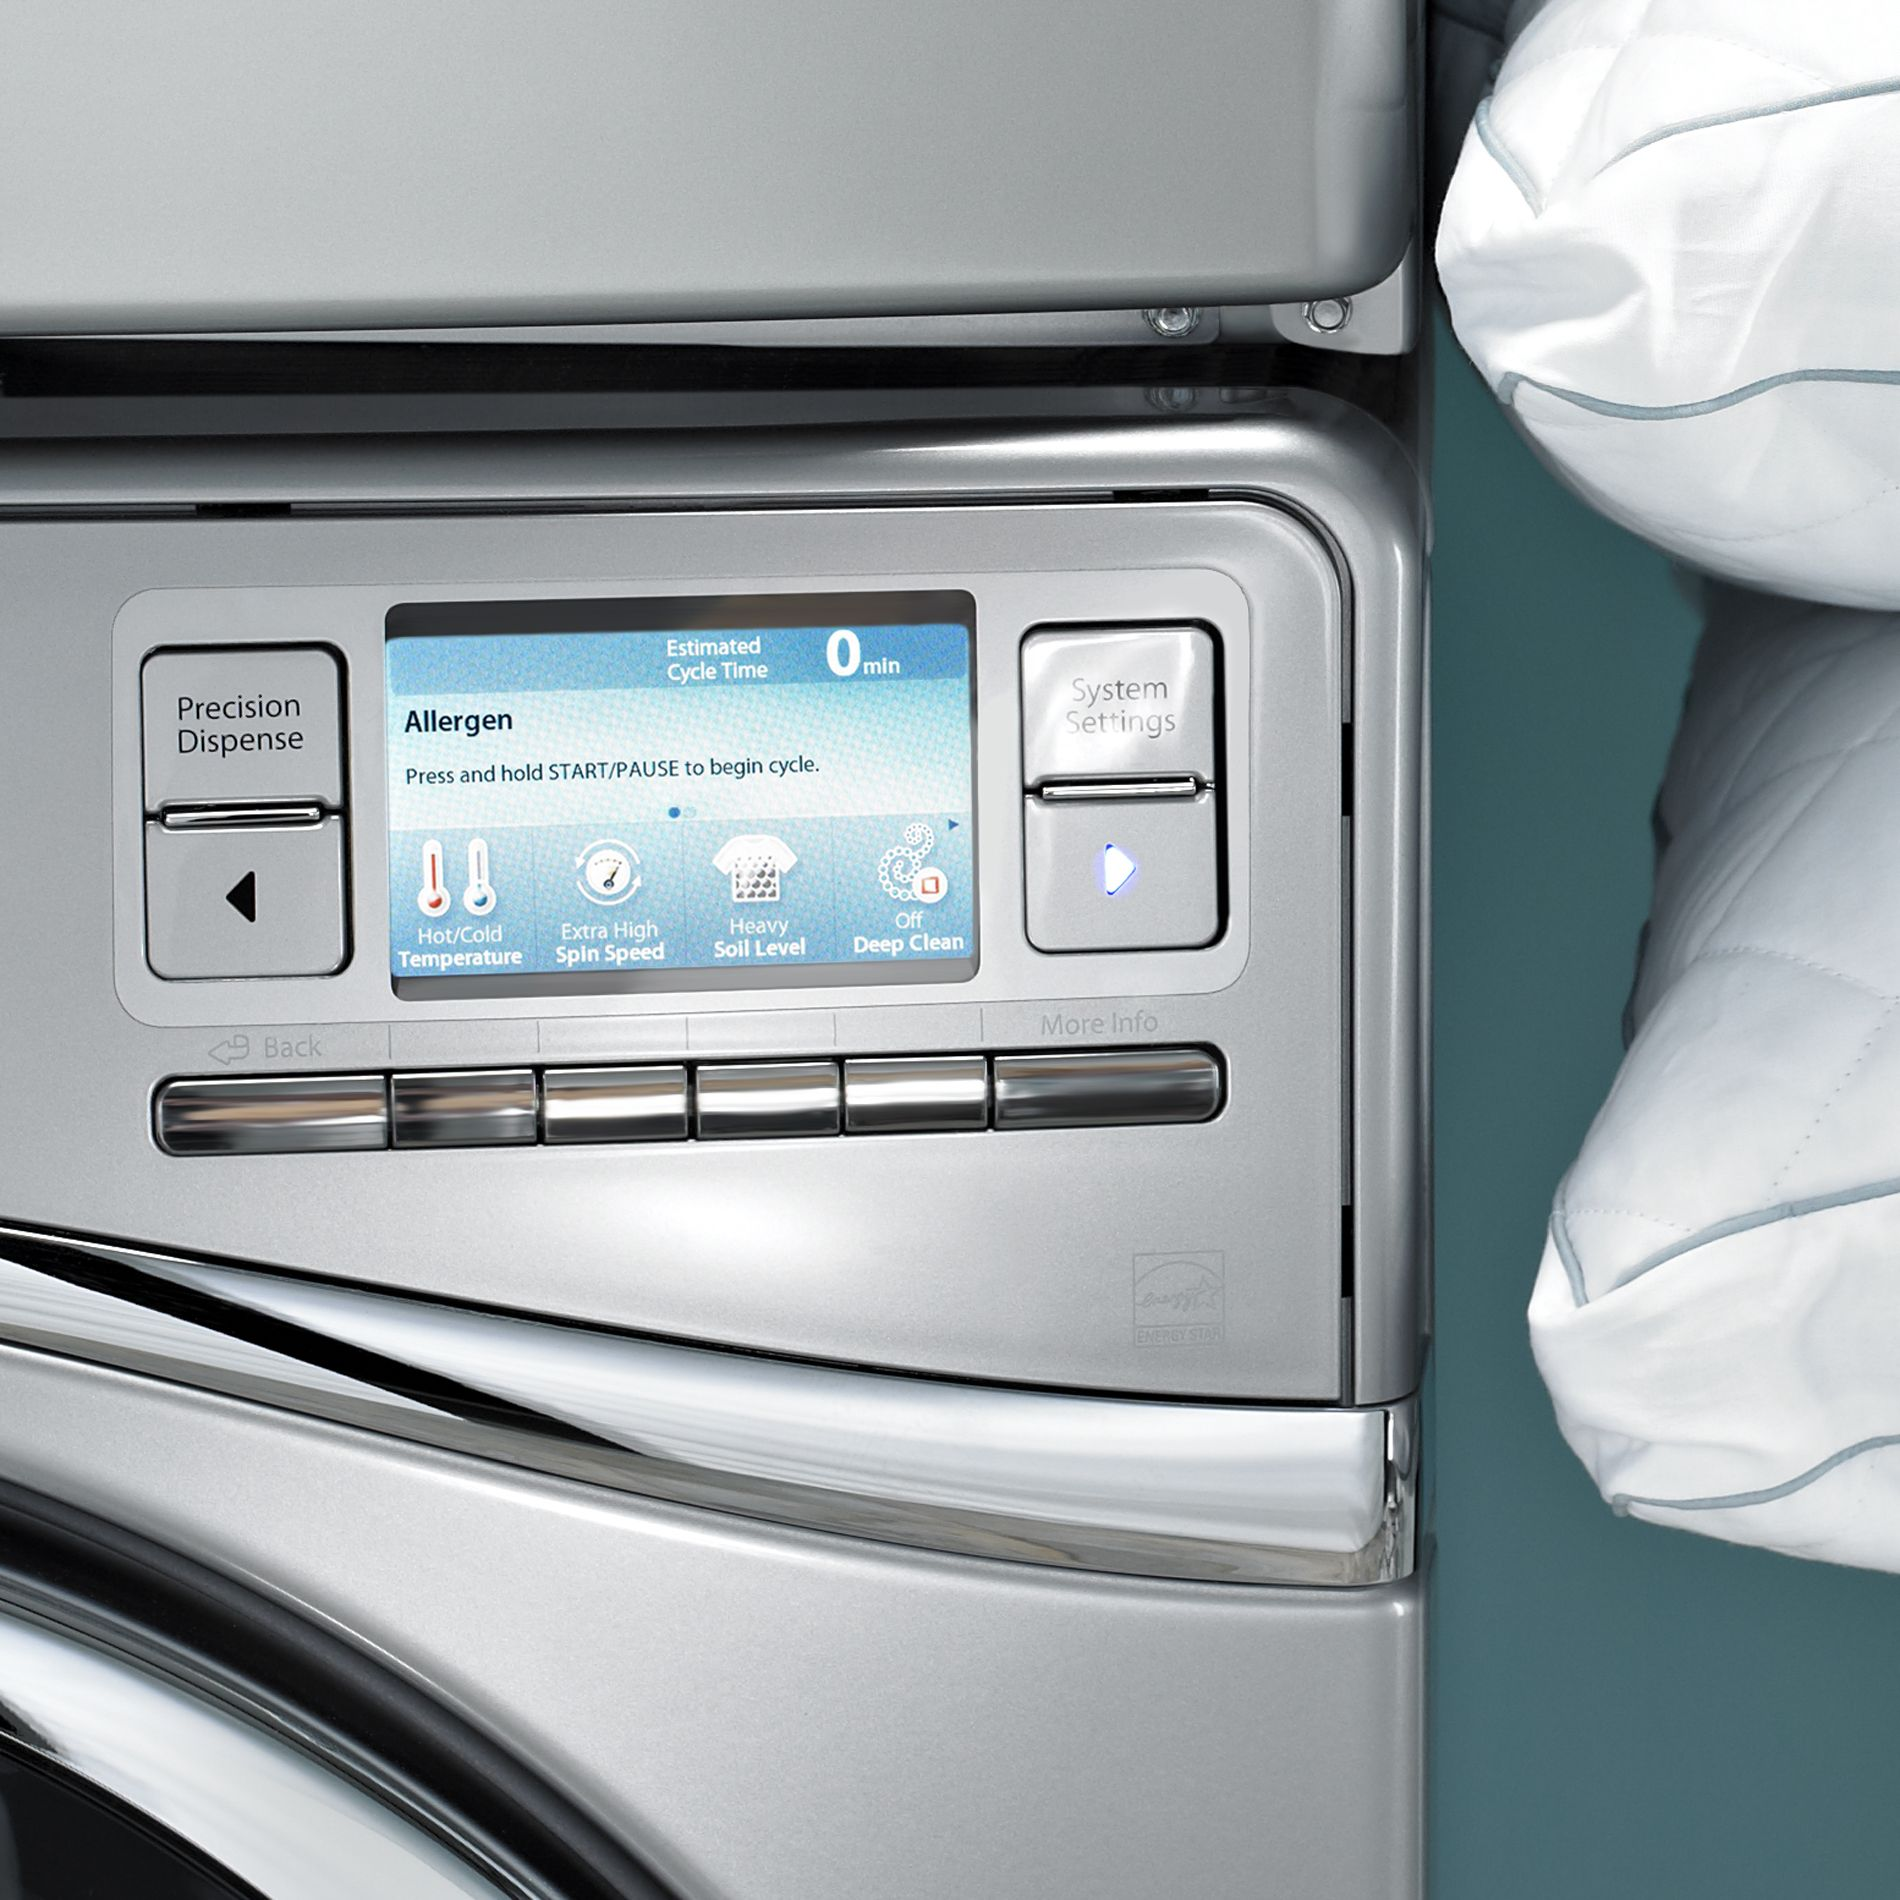 Whirlpool 7.4 cu. ft. Electric Dryer